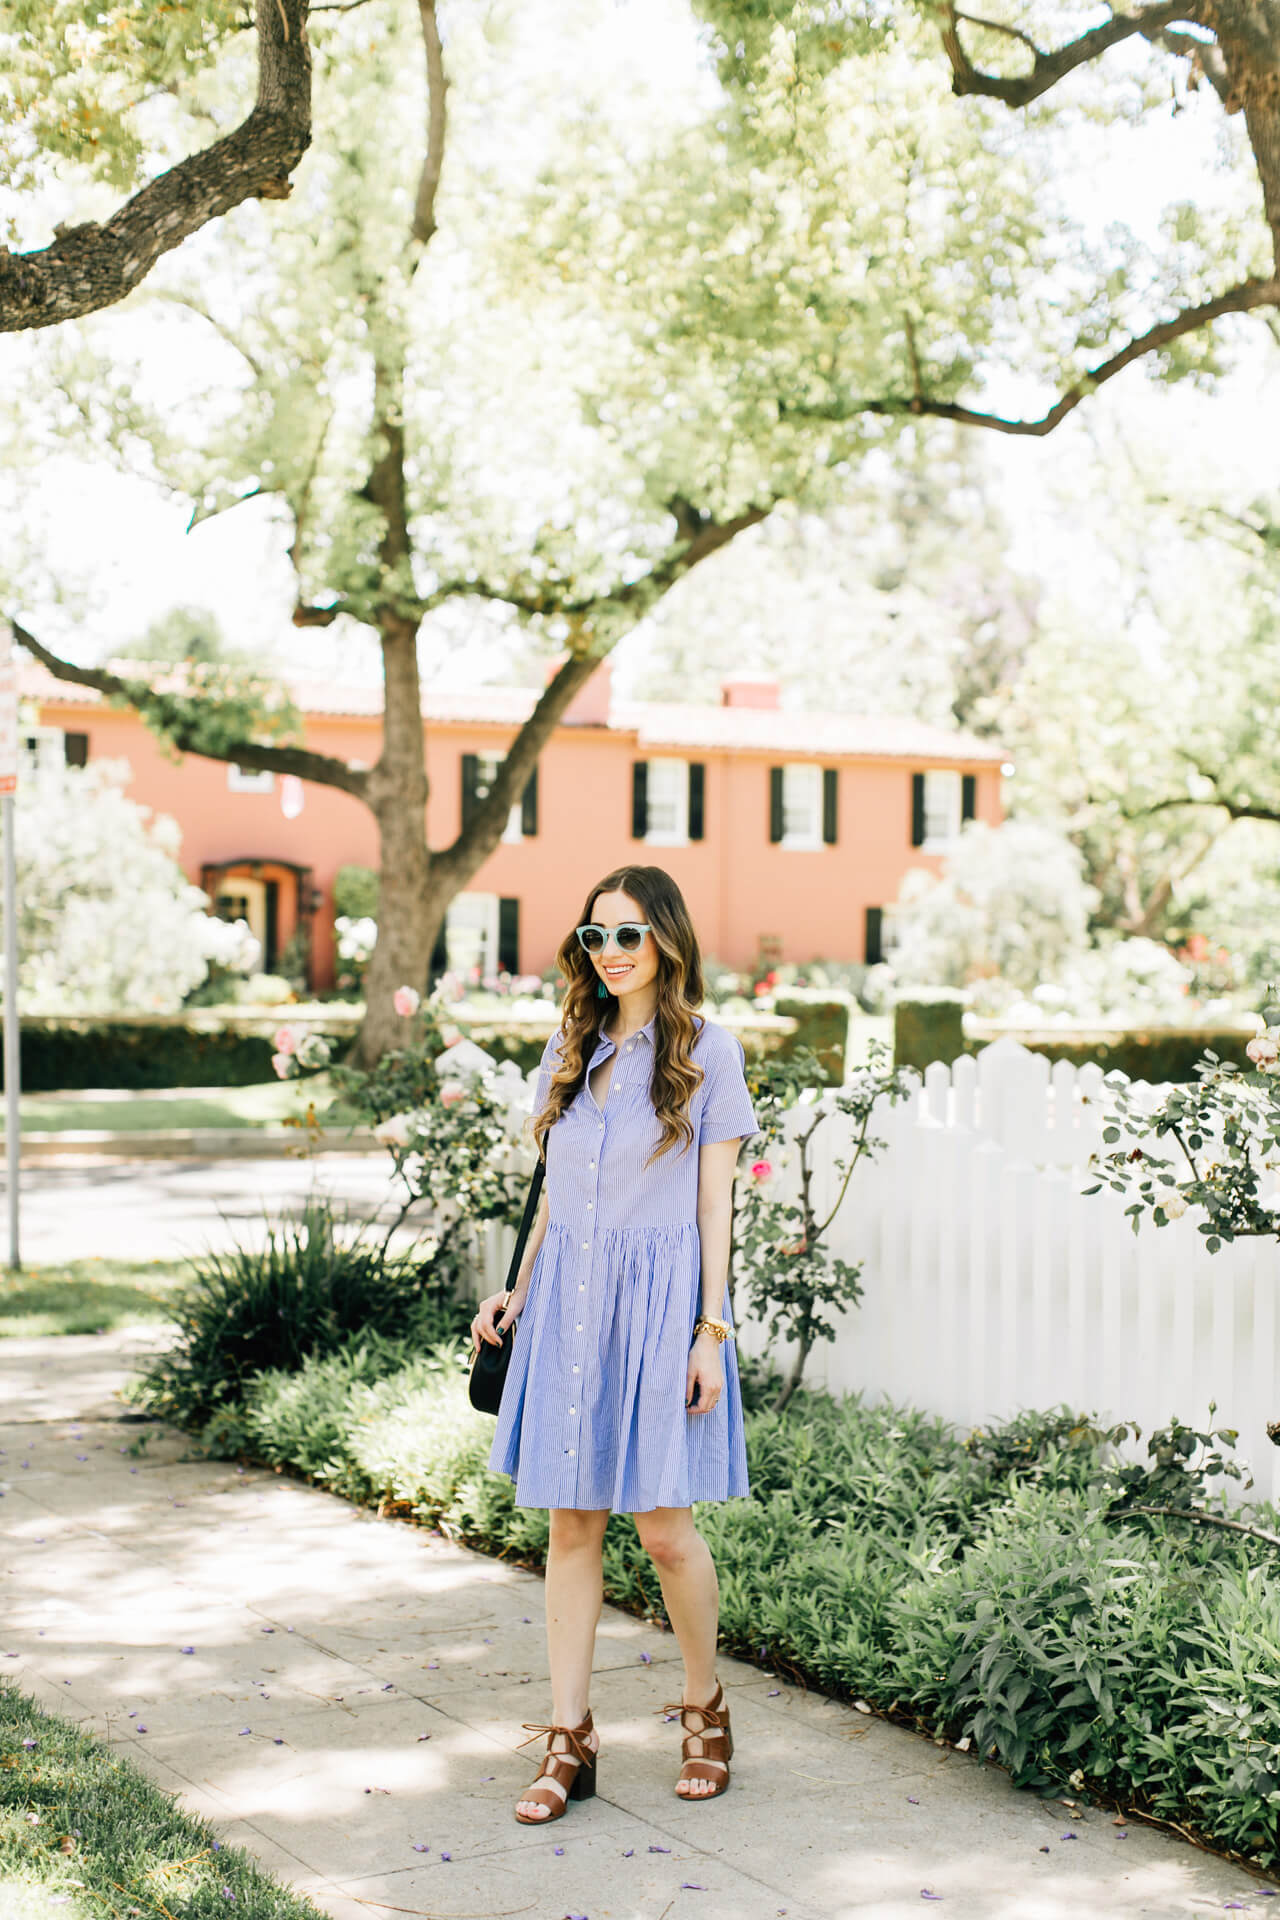 blue shirtdress outfit - perfect for spring!